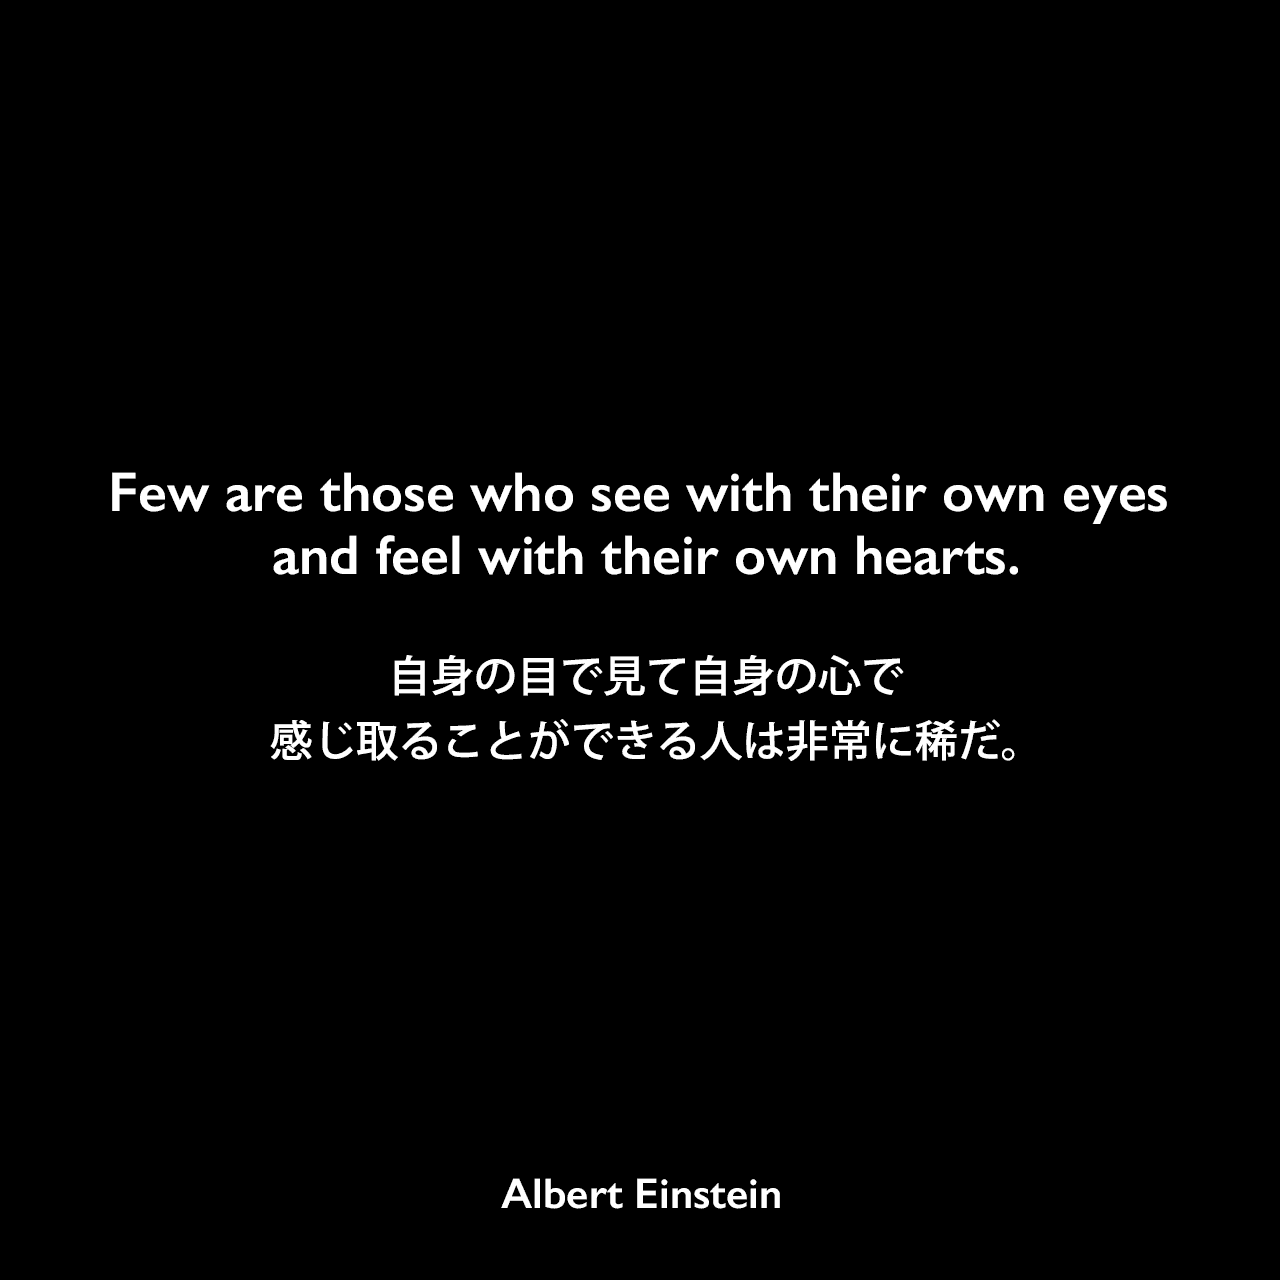 Few are those who see with their own eyes and feel with their own hearts.自身の目で見て自身の心で感じ取ることができる人は非常に稀だ。Albert Einstein